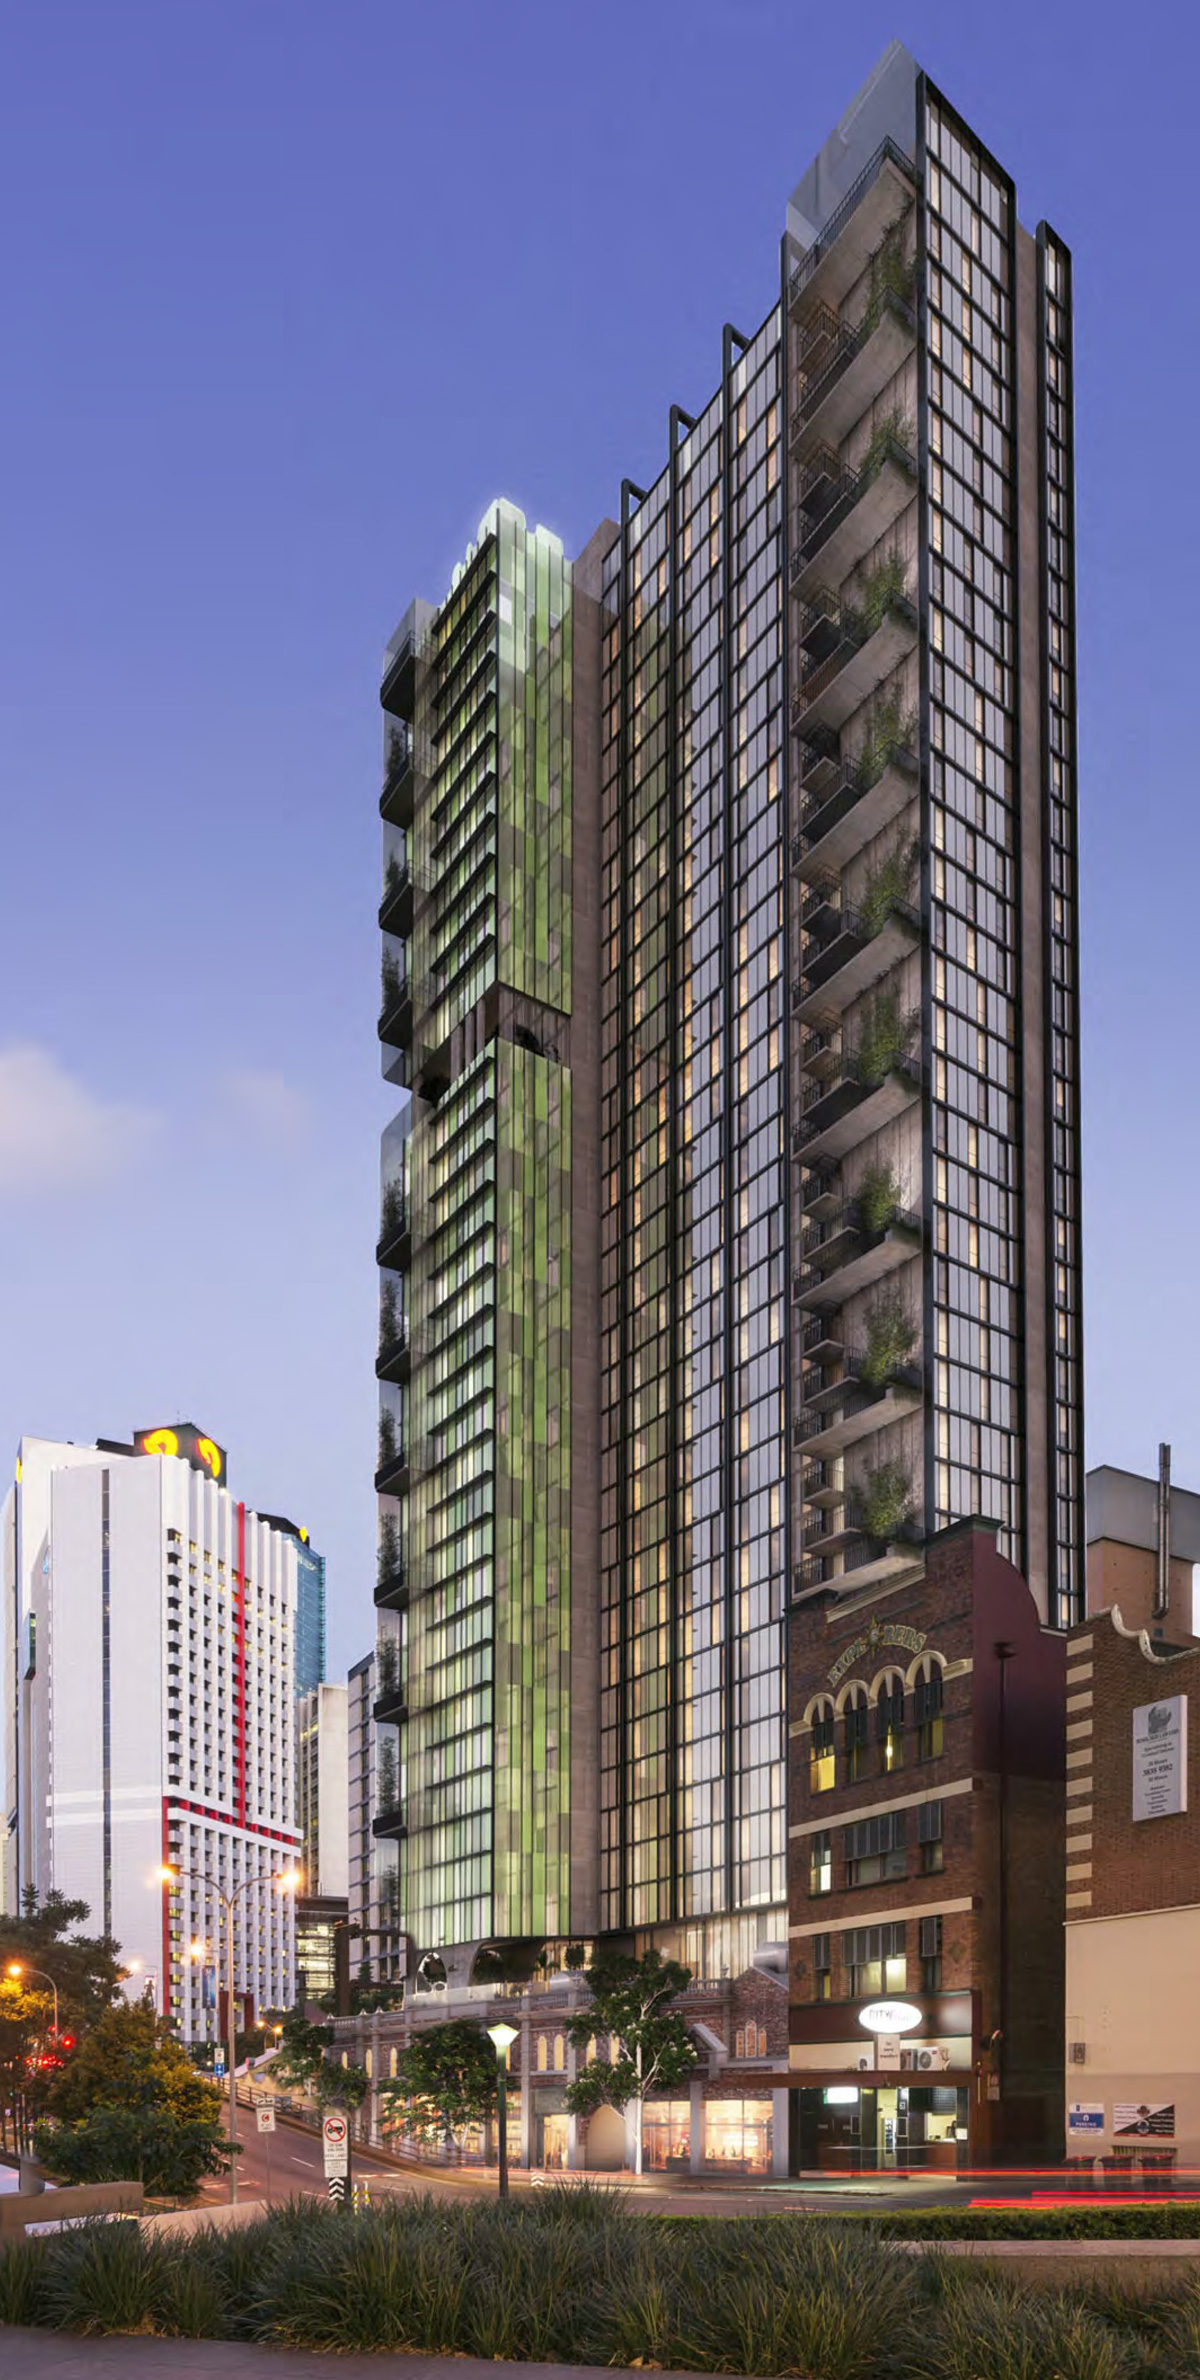 Artist's impression of proposed student accommodation tower by Wee Hur in 2017